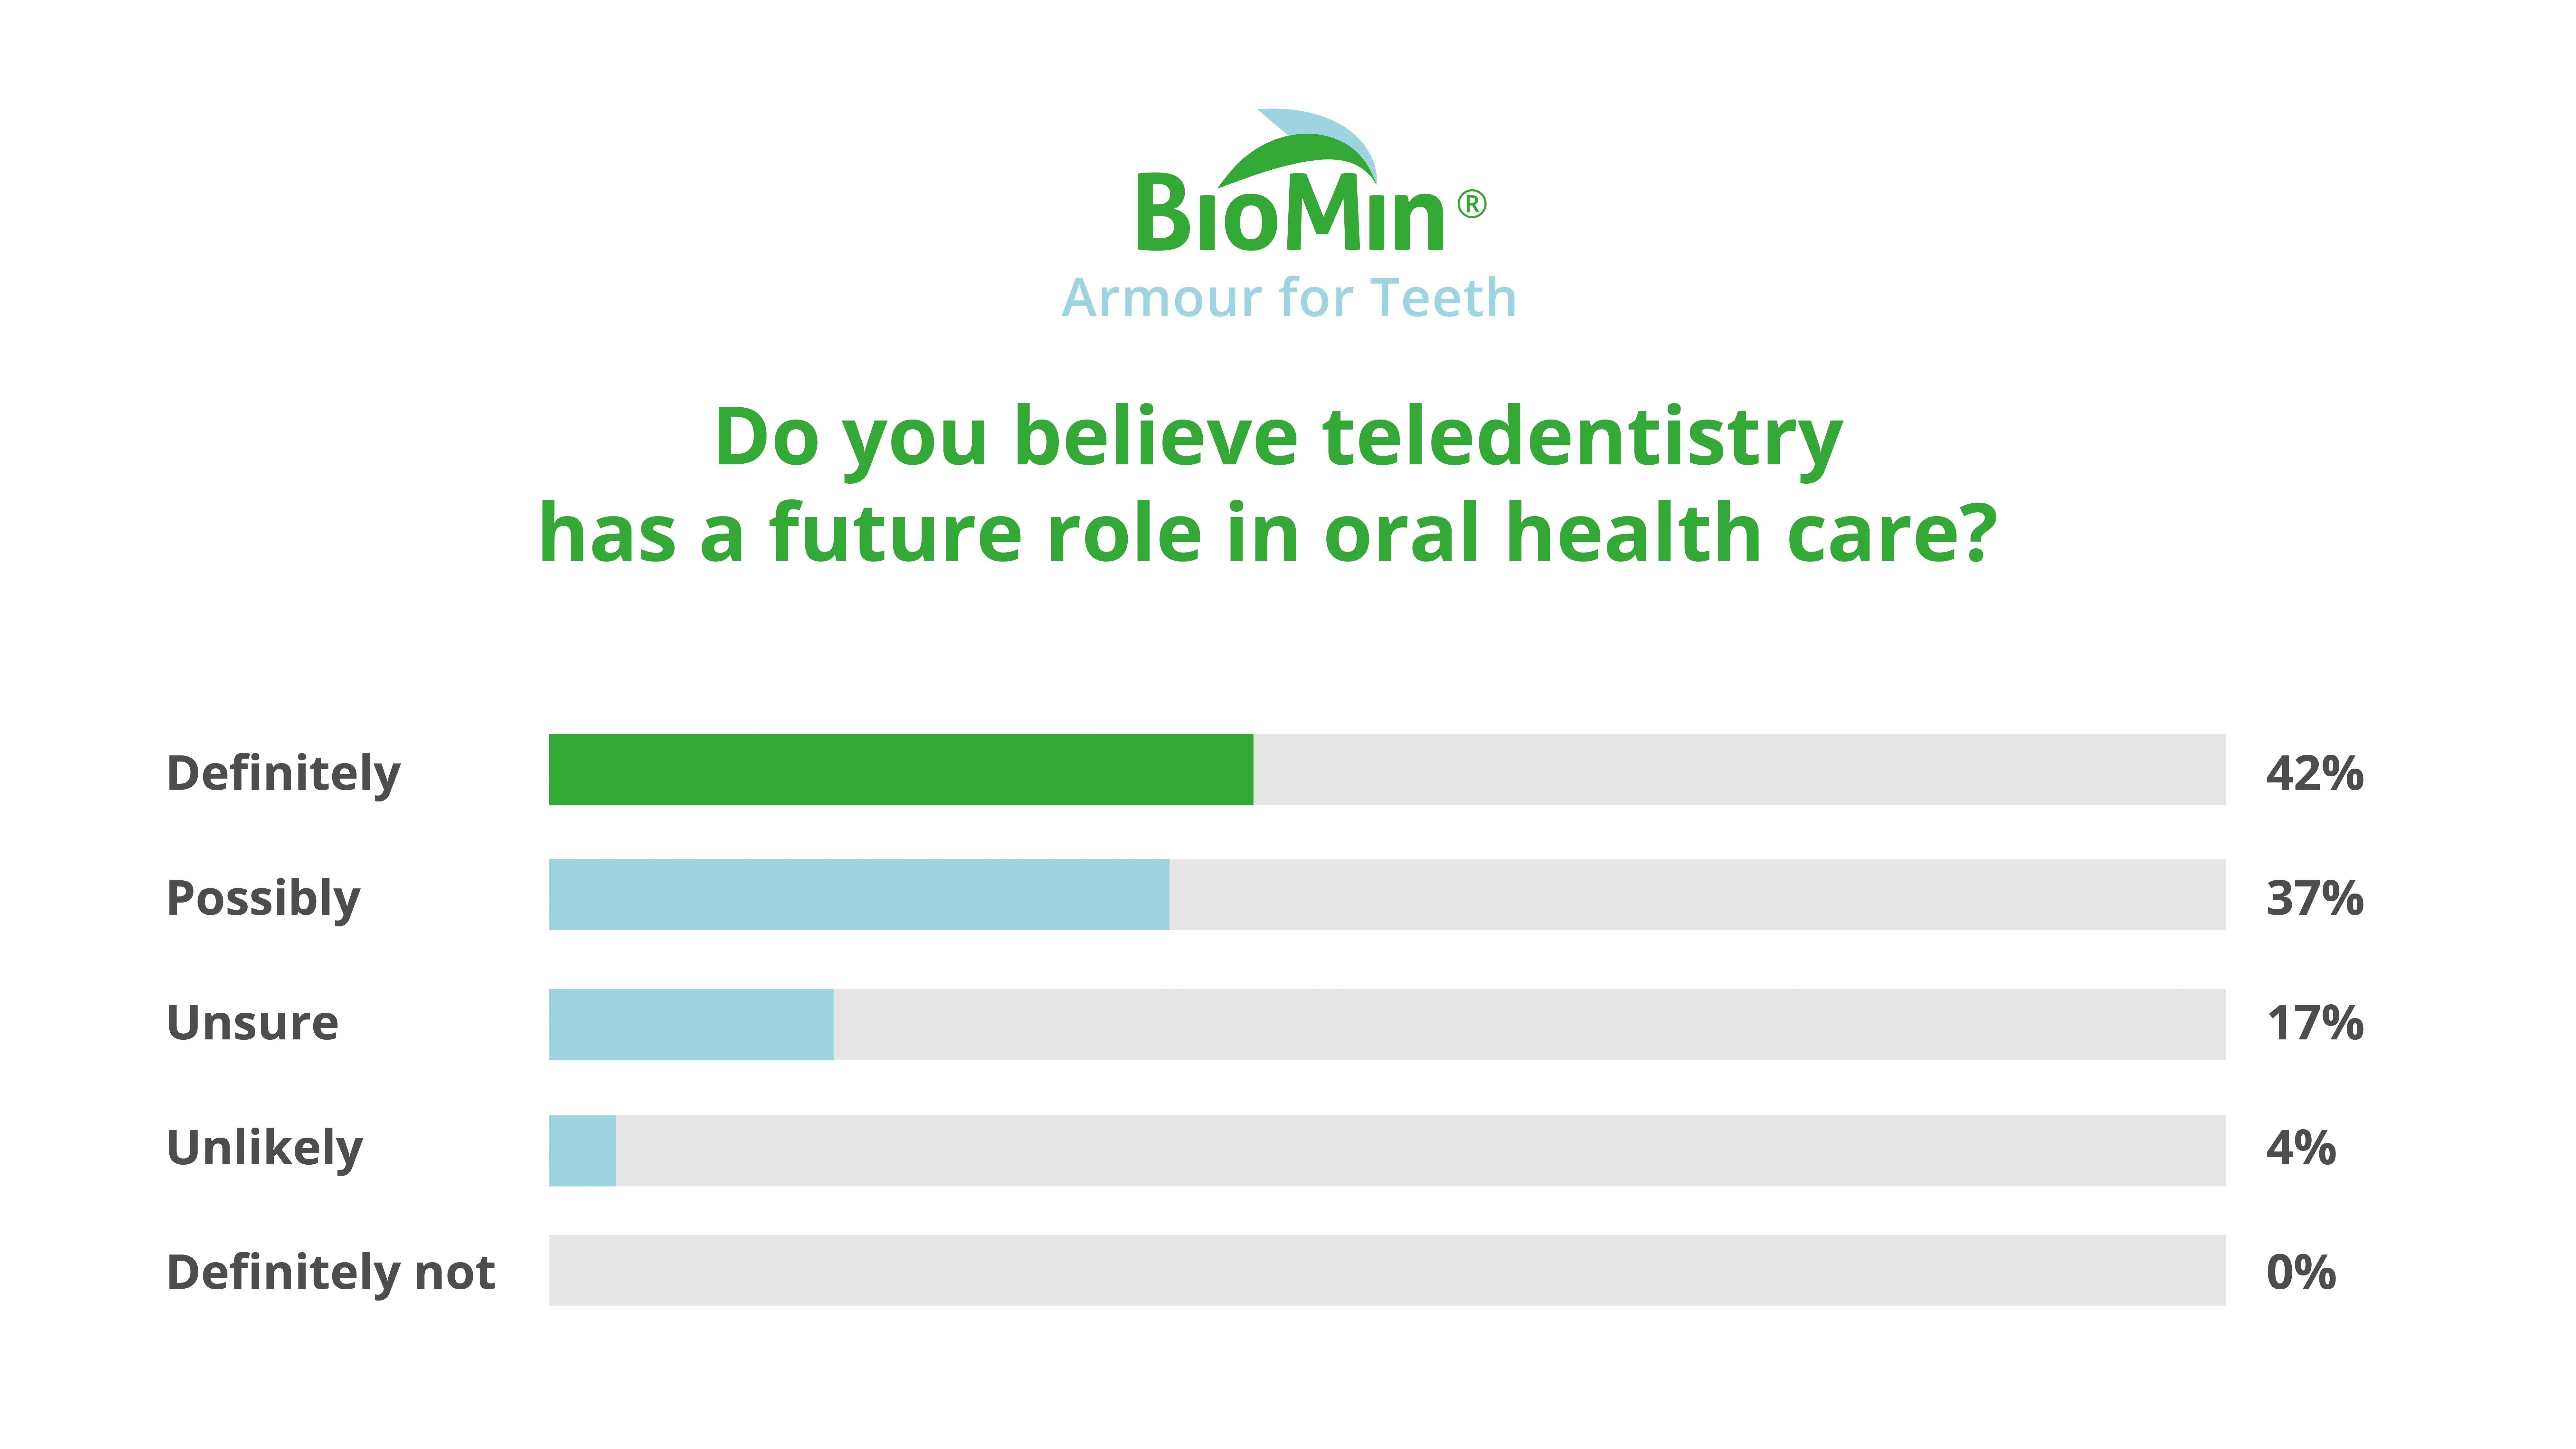 Do you believe teledentistry has a future role in oral health care?